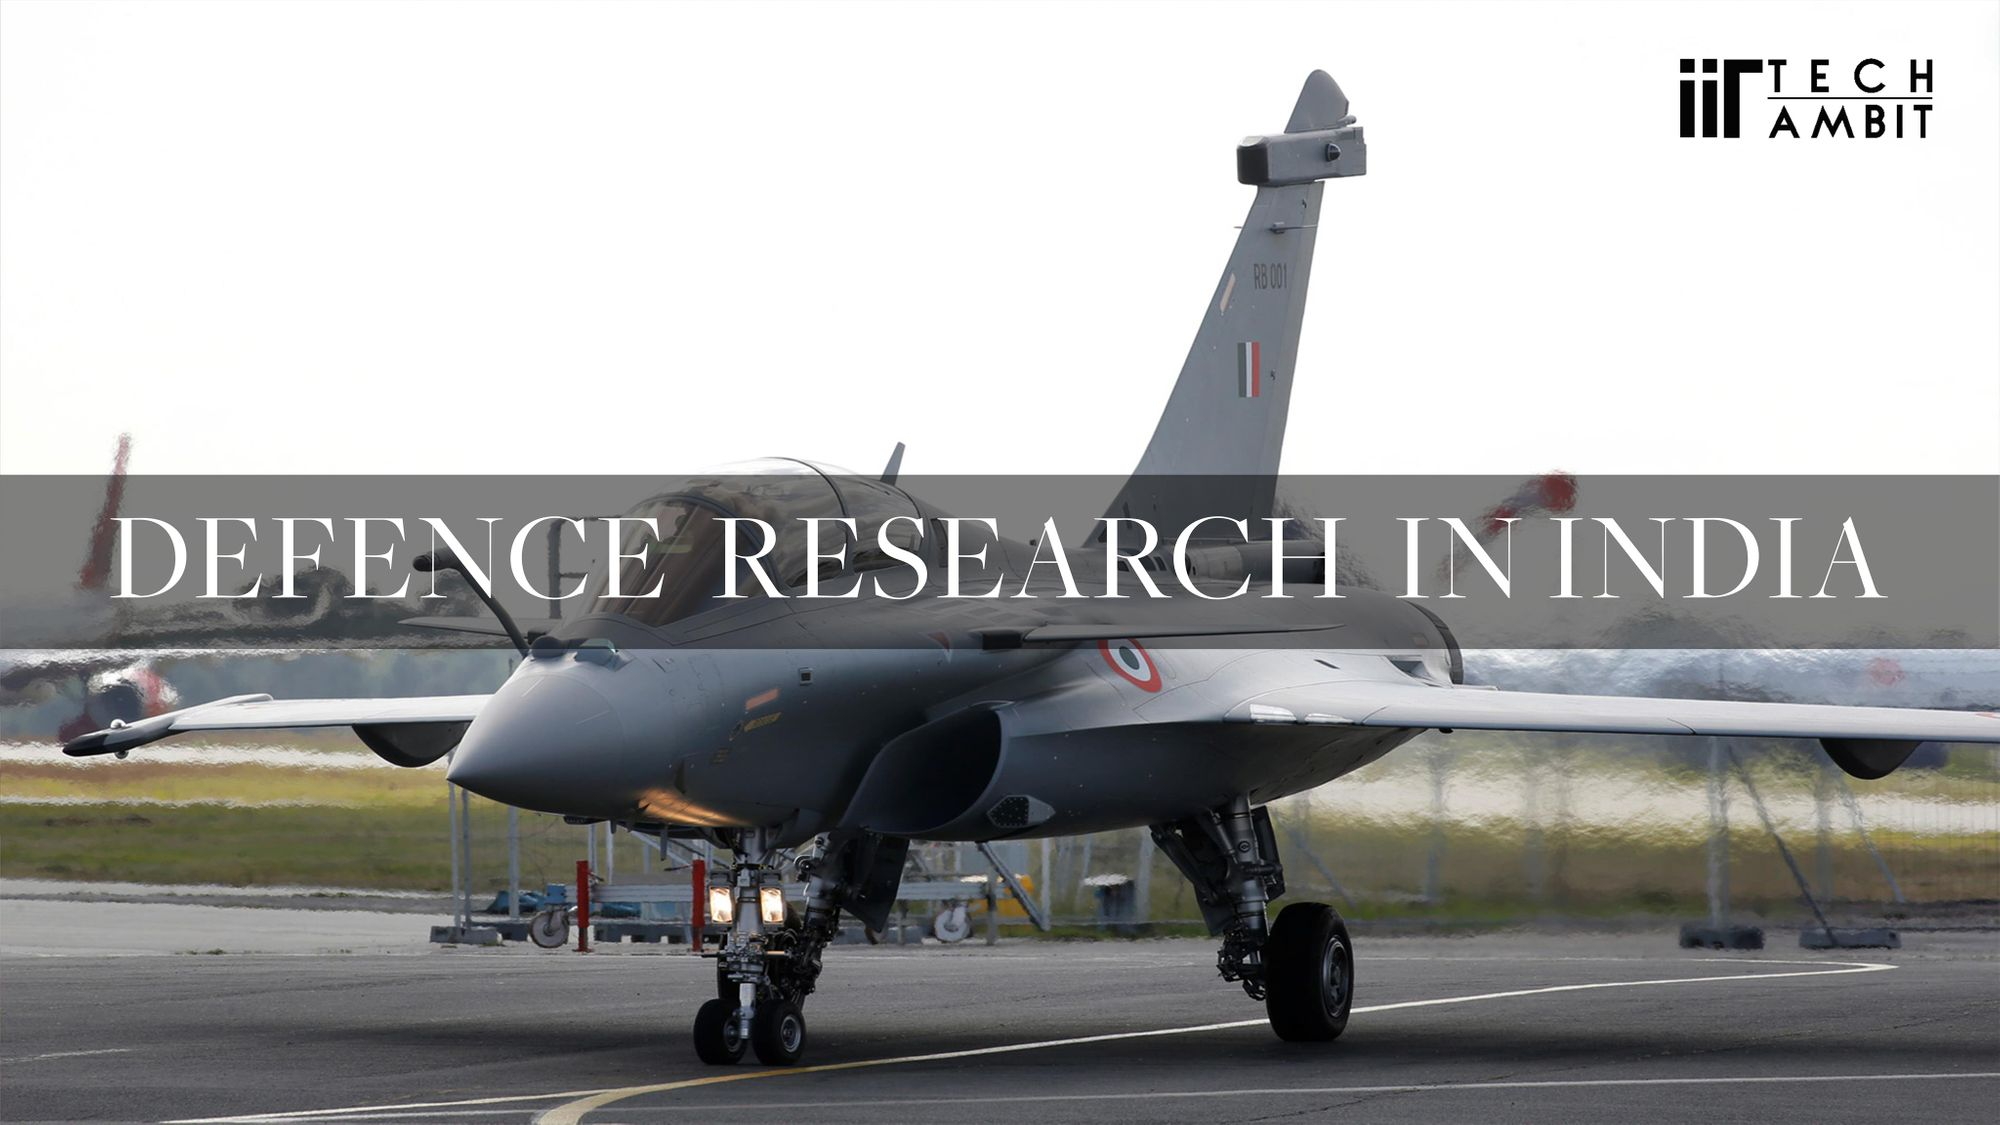 Defence Research in India